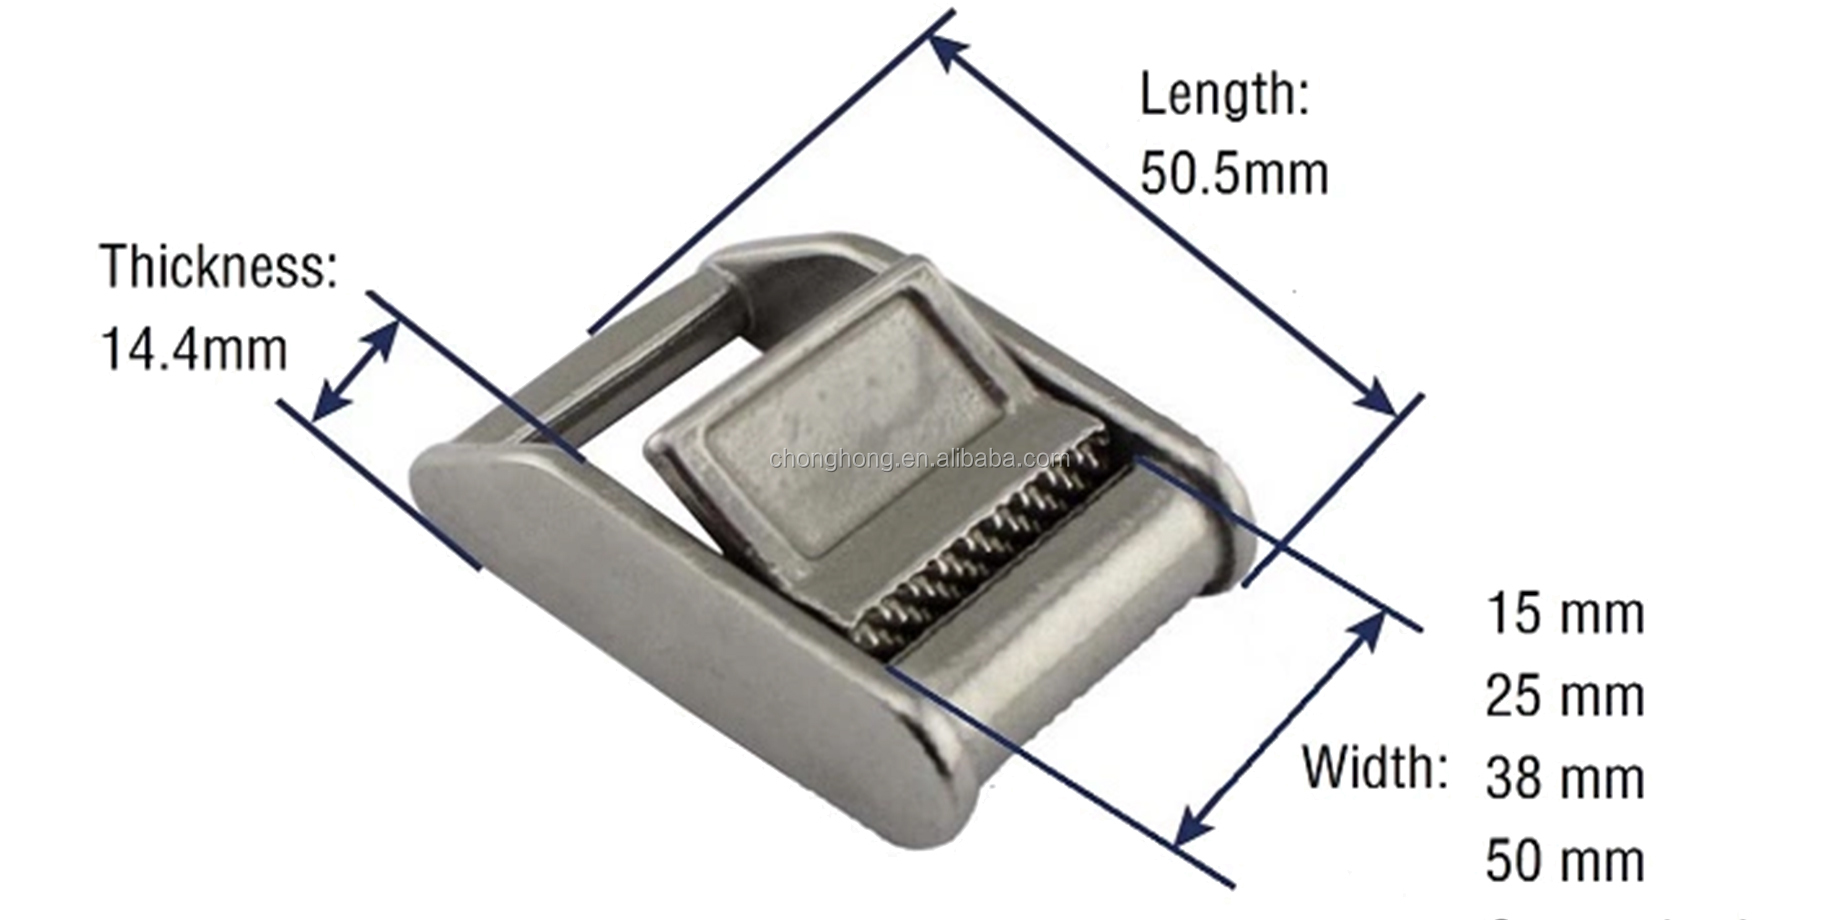 15mm,25mm,38mm,50mm Stainless Steel Cam Buckle,Ratchet Buckle for Cargo Lashing Strap